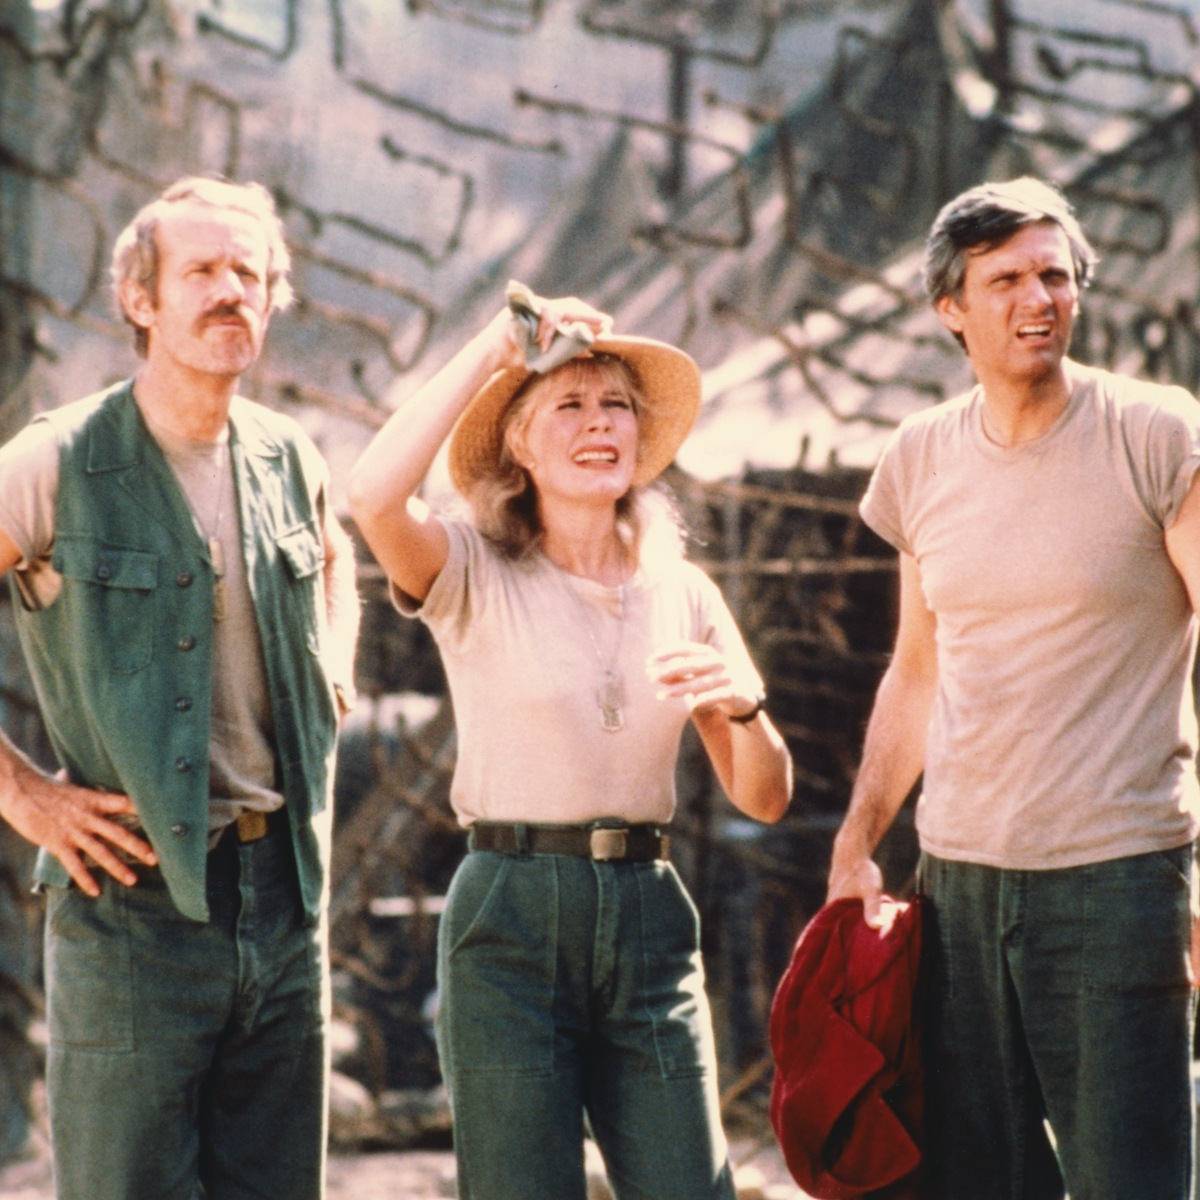 MASH' TV Show: A Look Back at What Made it a Classic